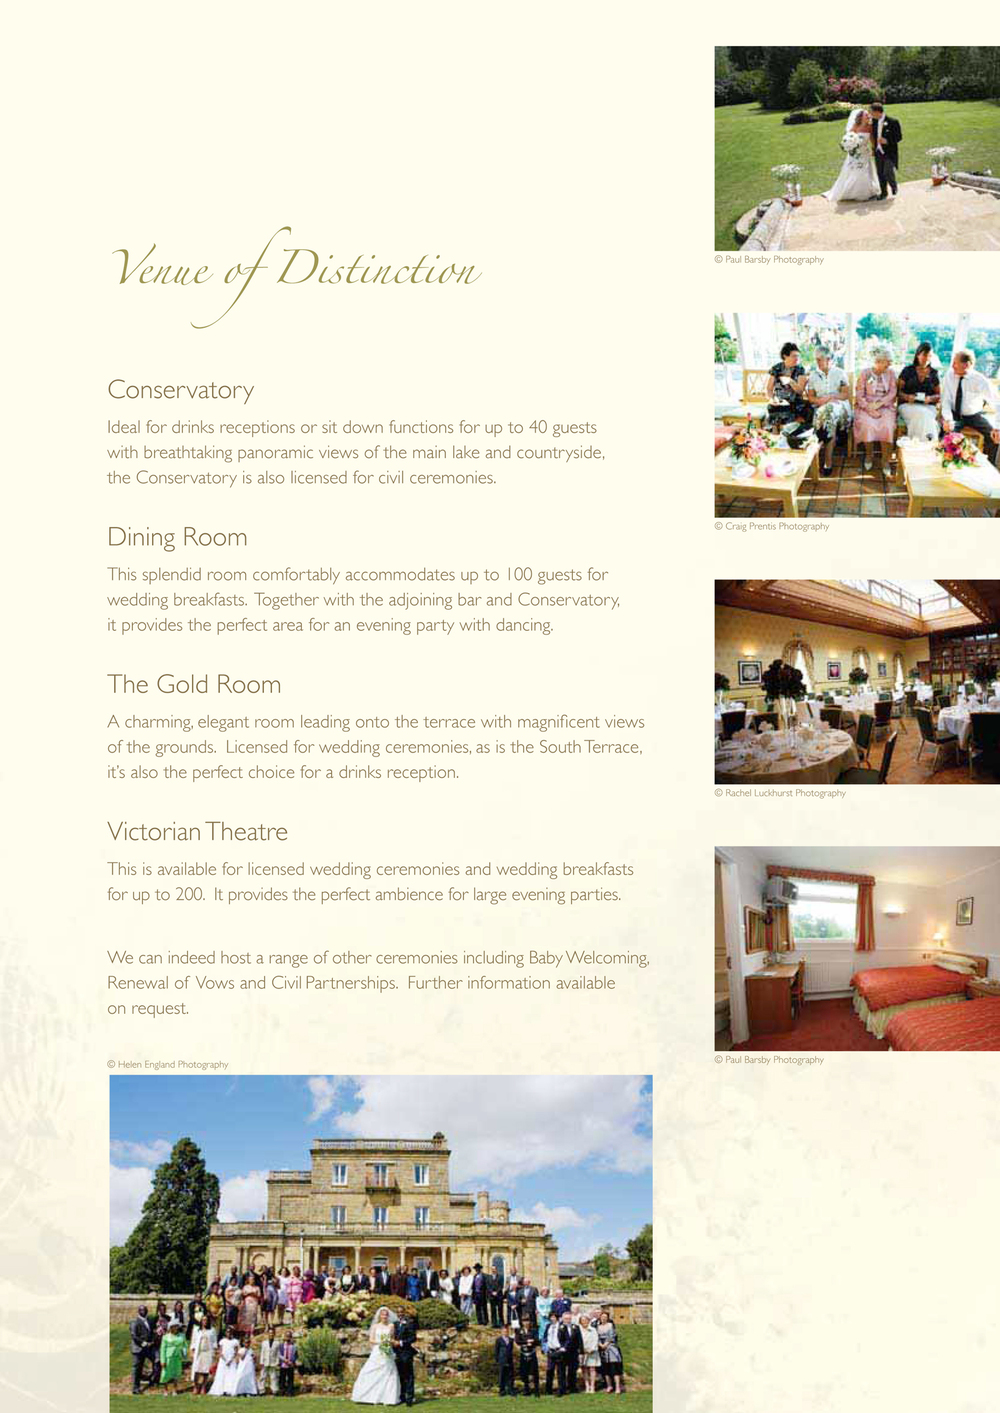 a Salomons Brochure 6 June 2012-9.jpg